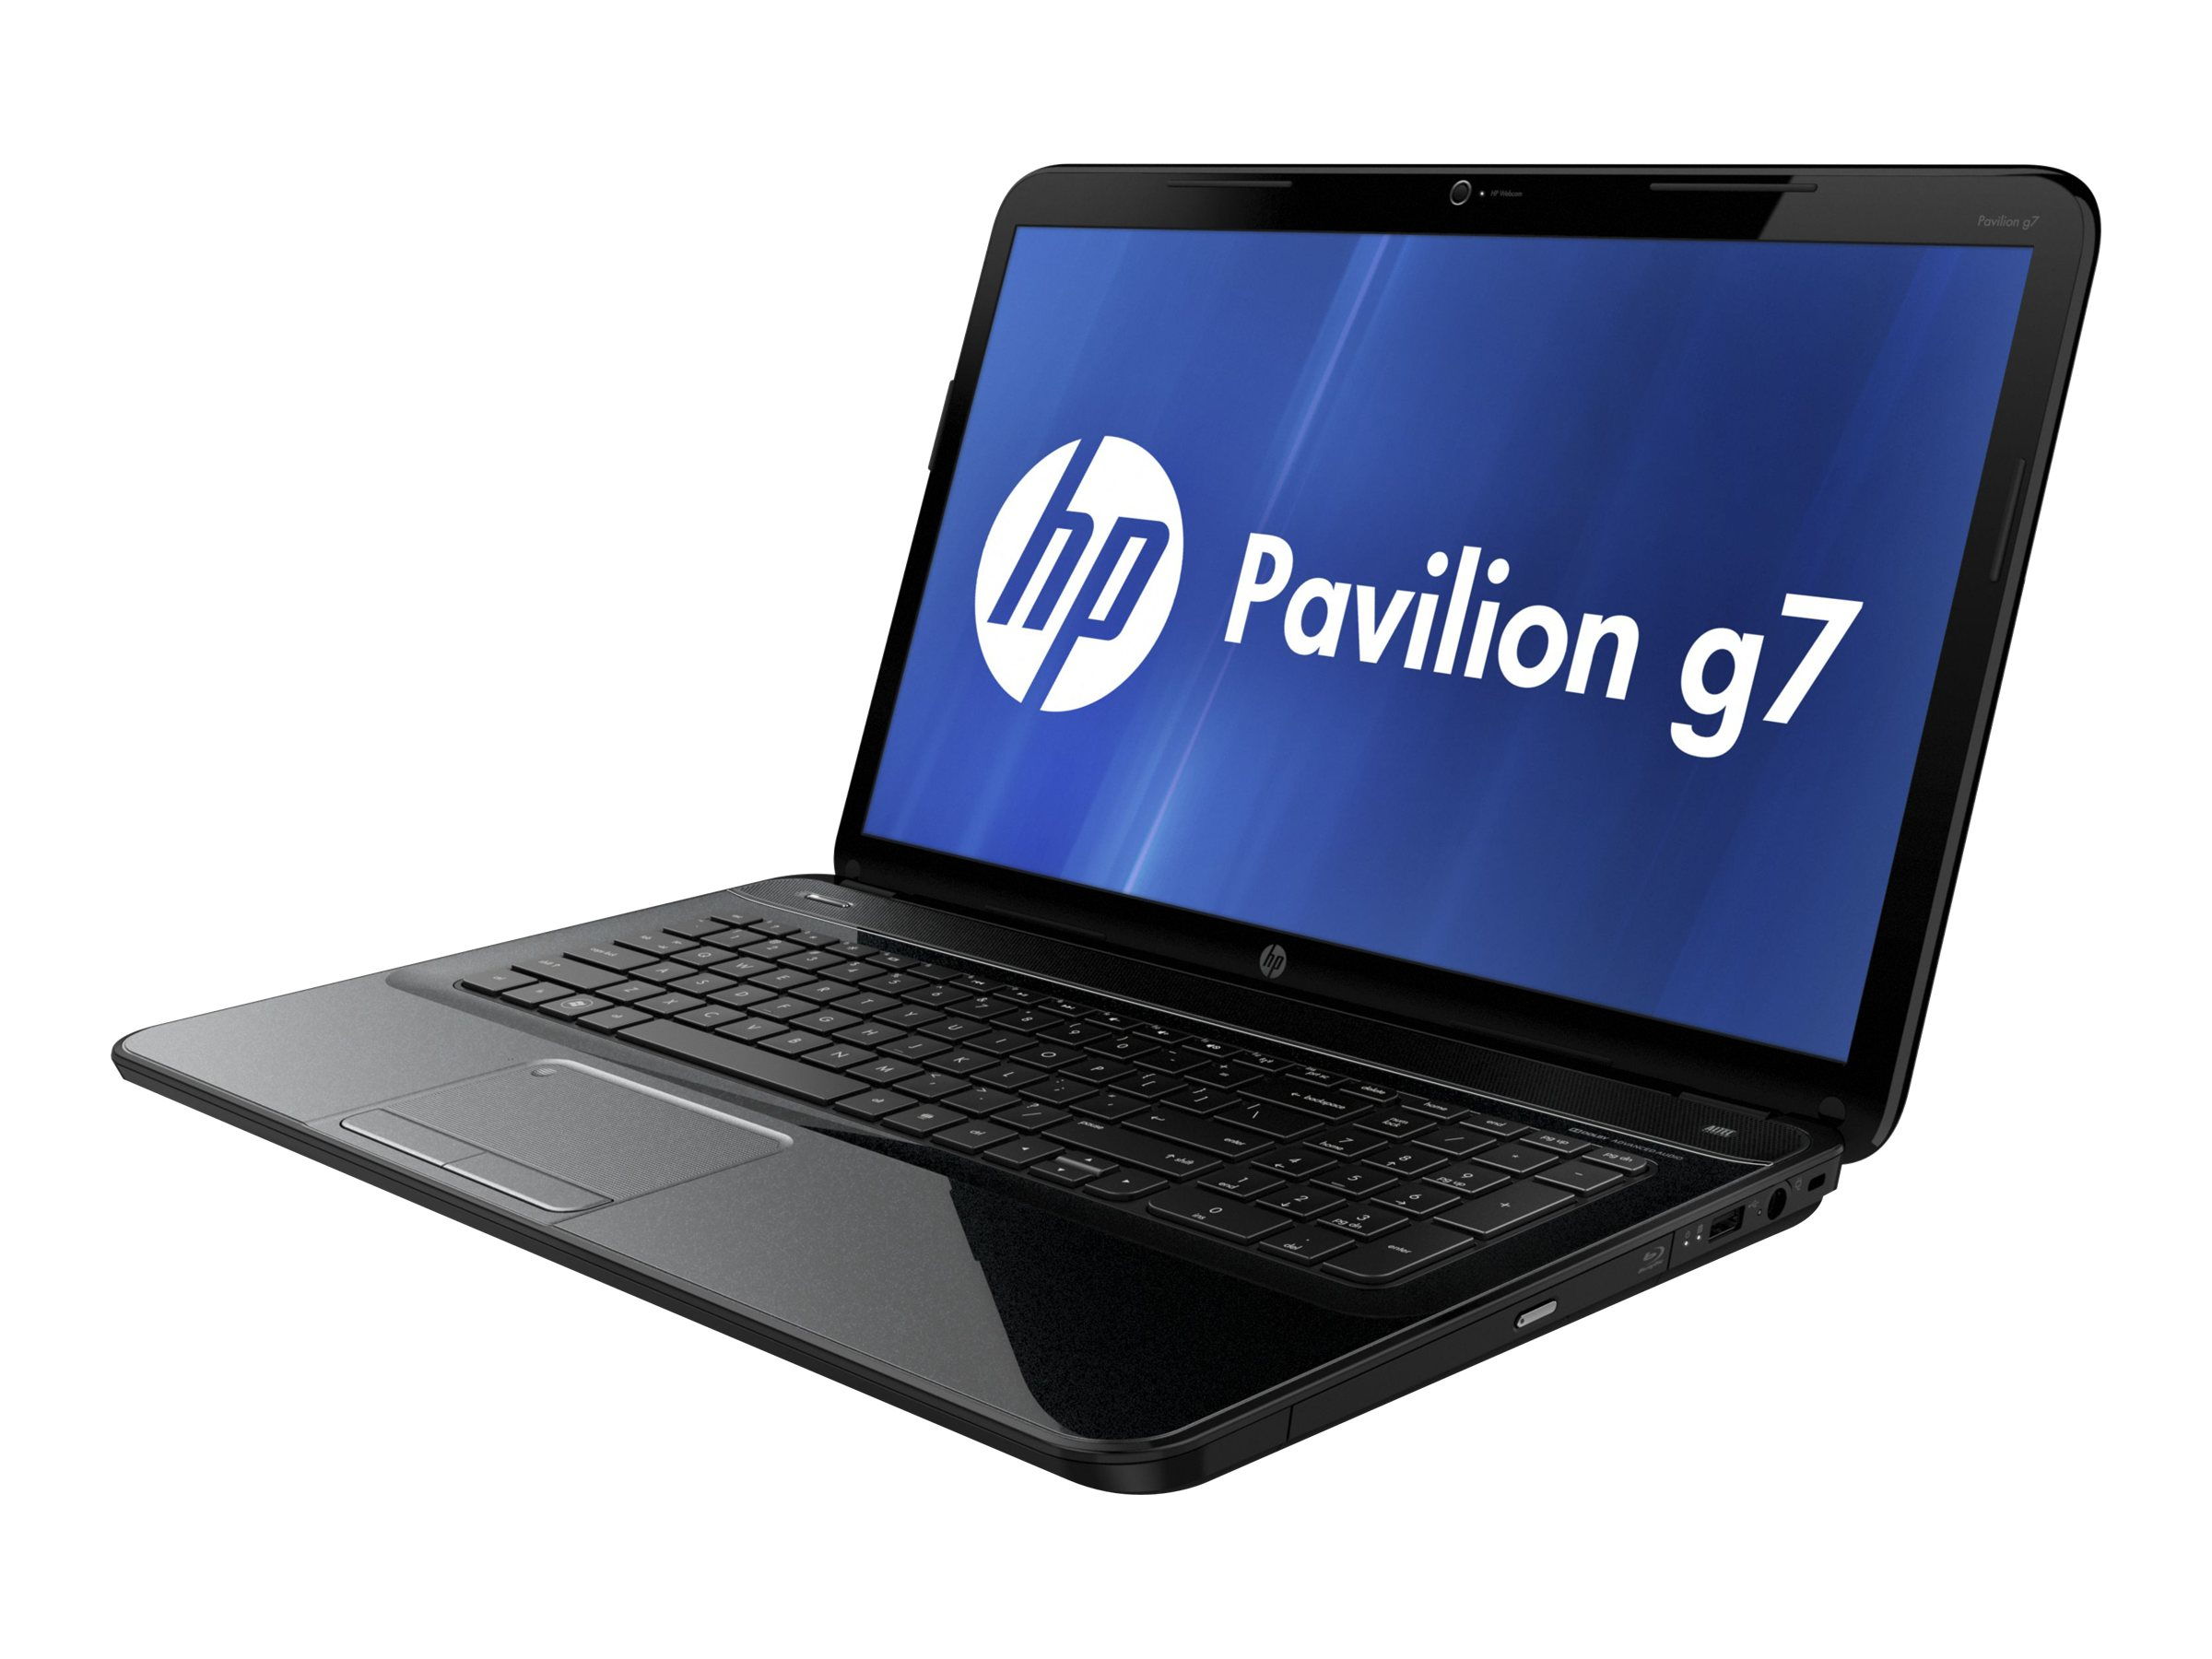 HP Pavilion G7-2222us : 2.4GHz Core i3 17.3in display, D1D34UA#ABA